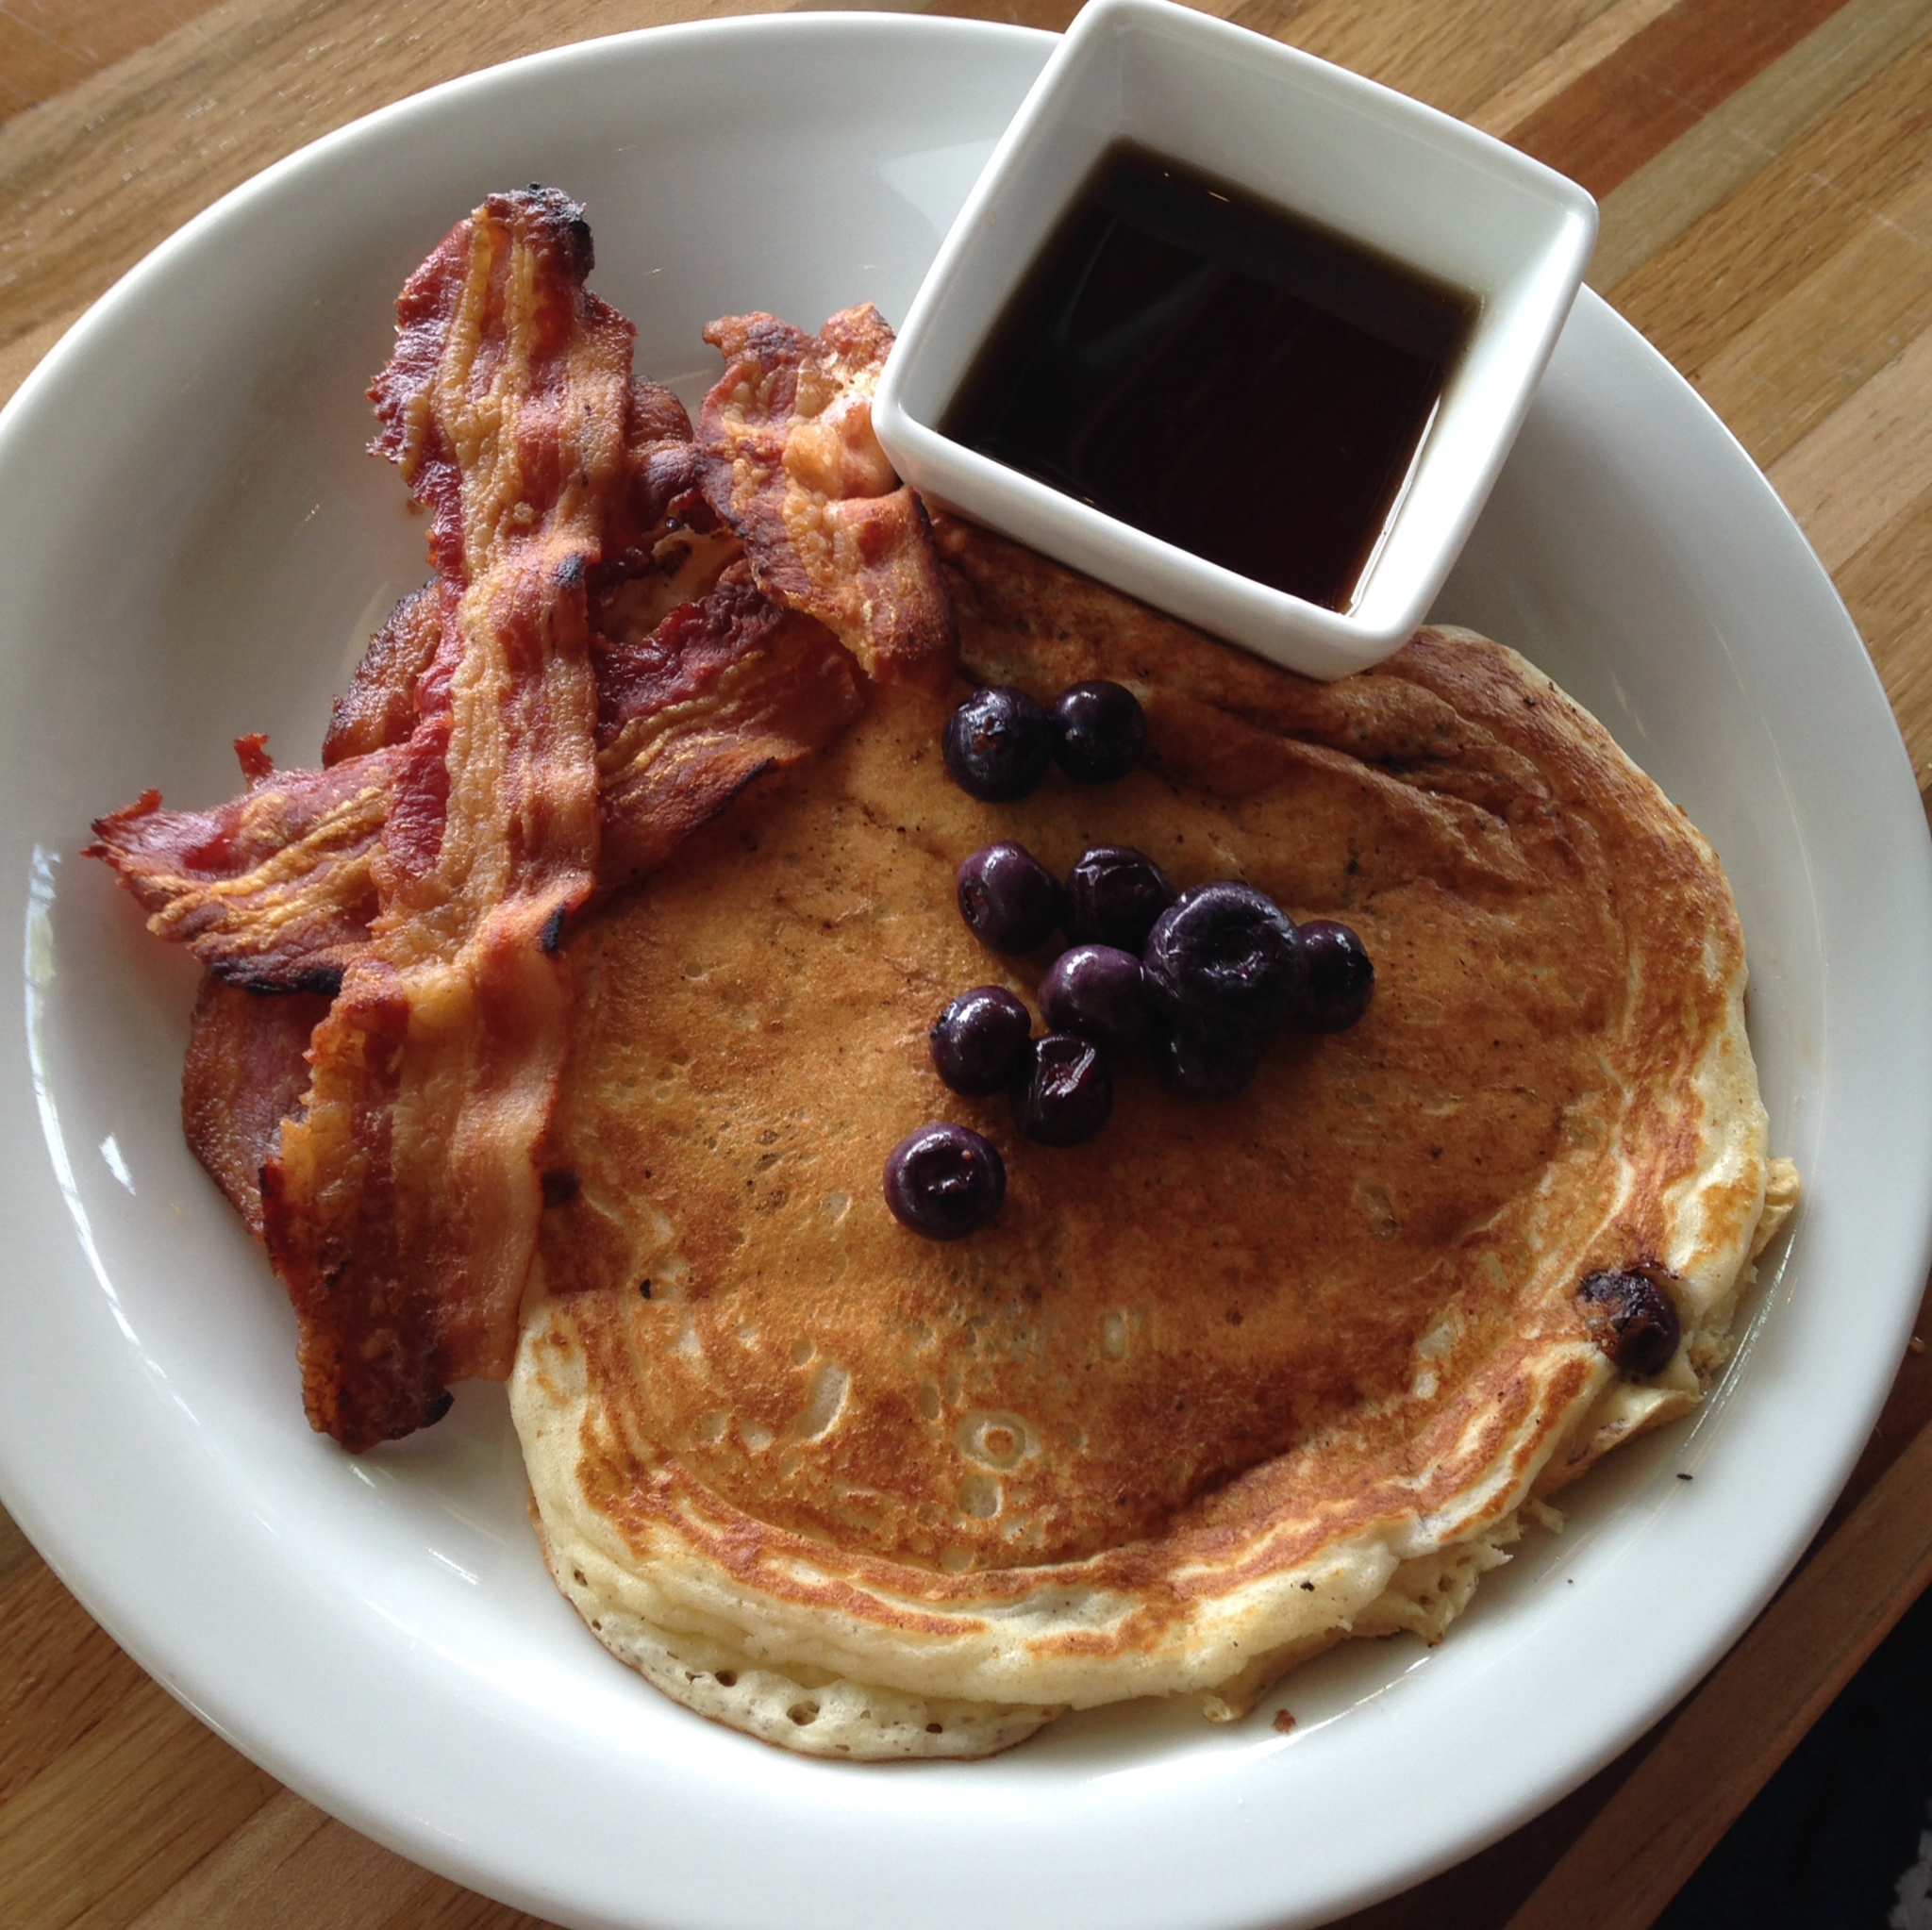 The Flying Squirrel - blueberry pancake, bacon, sweet syrup.